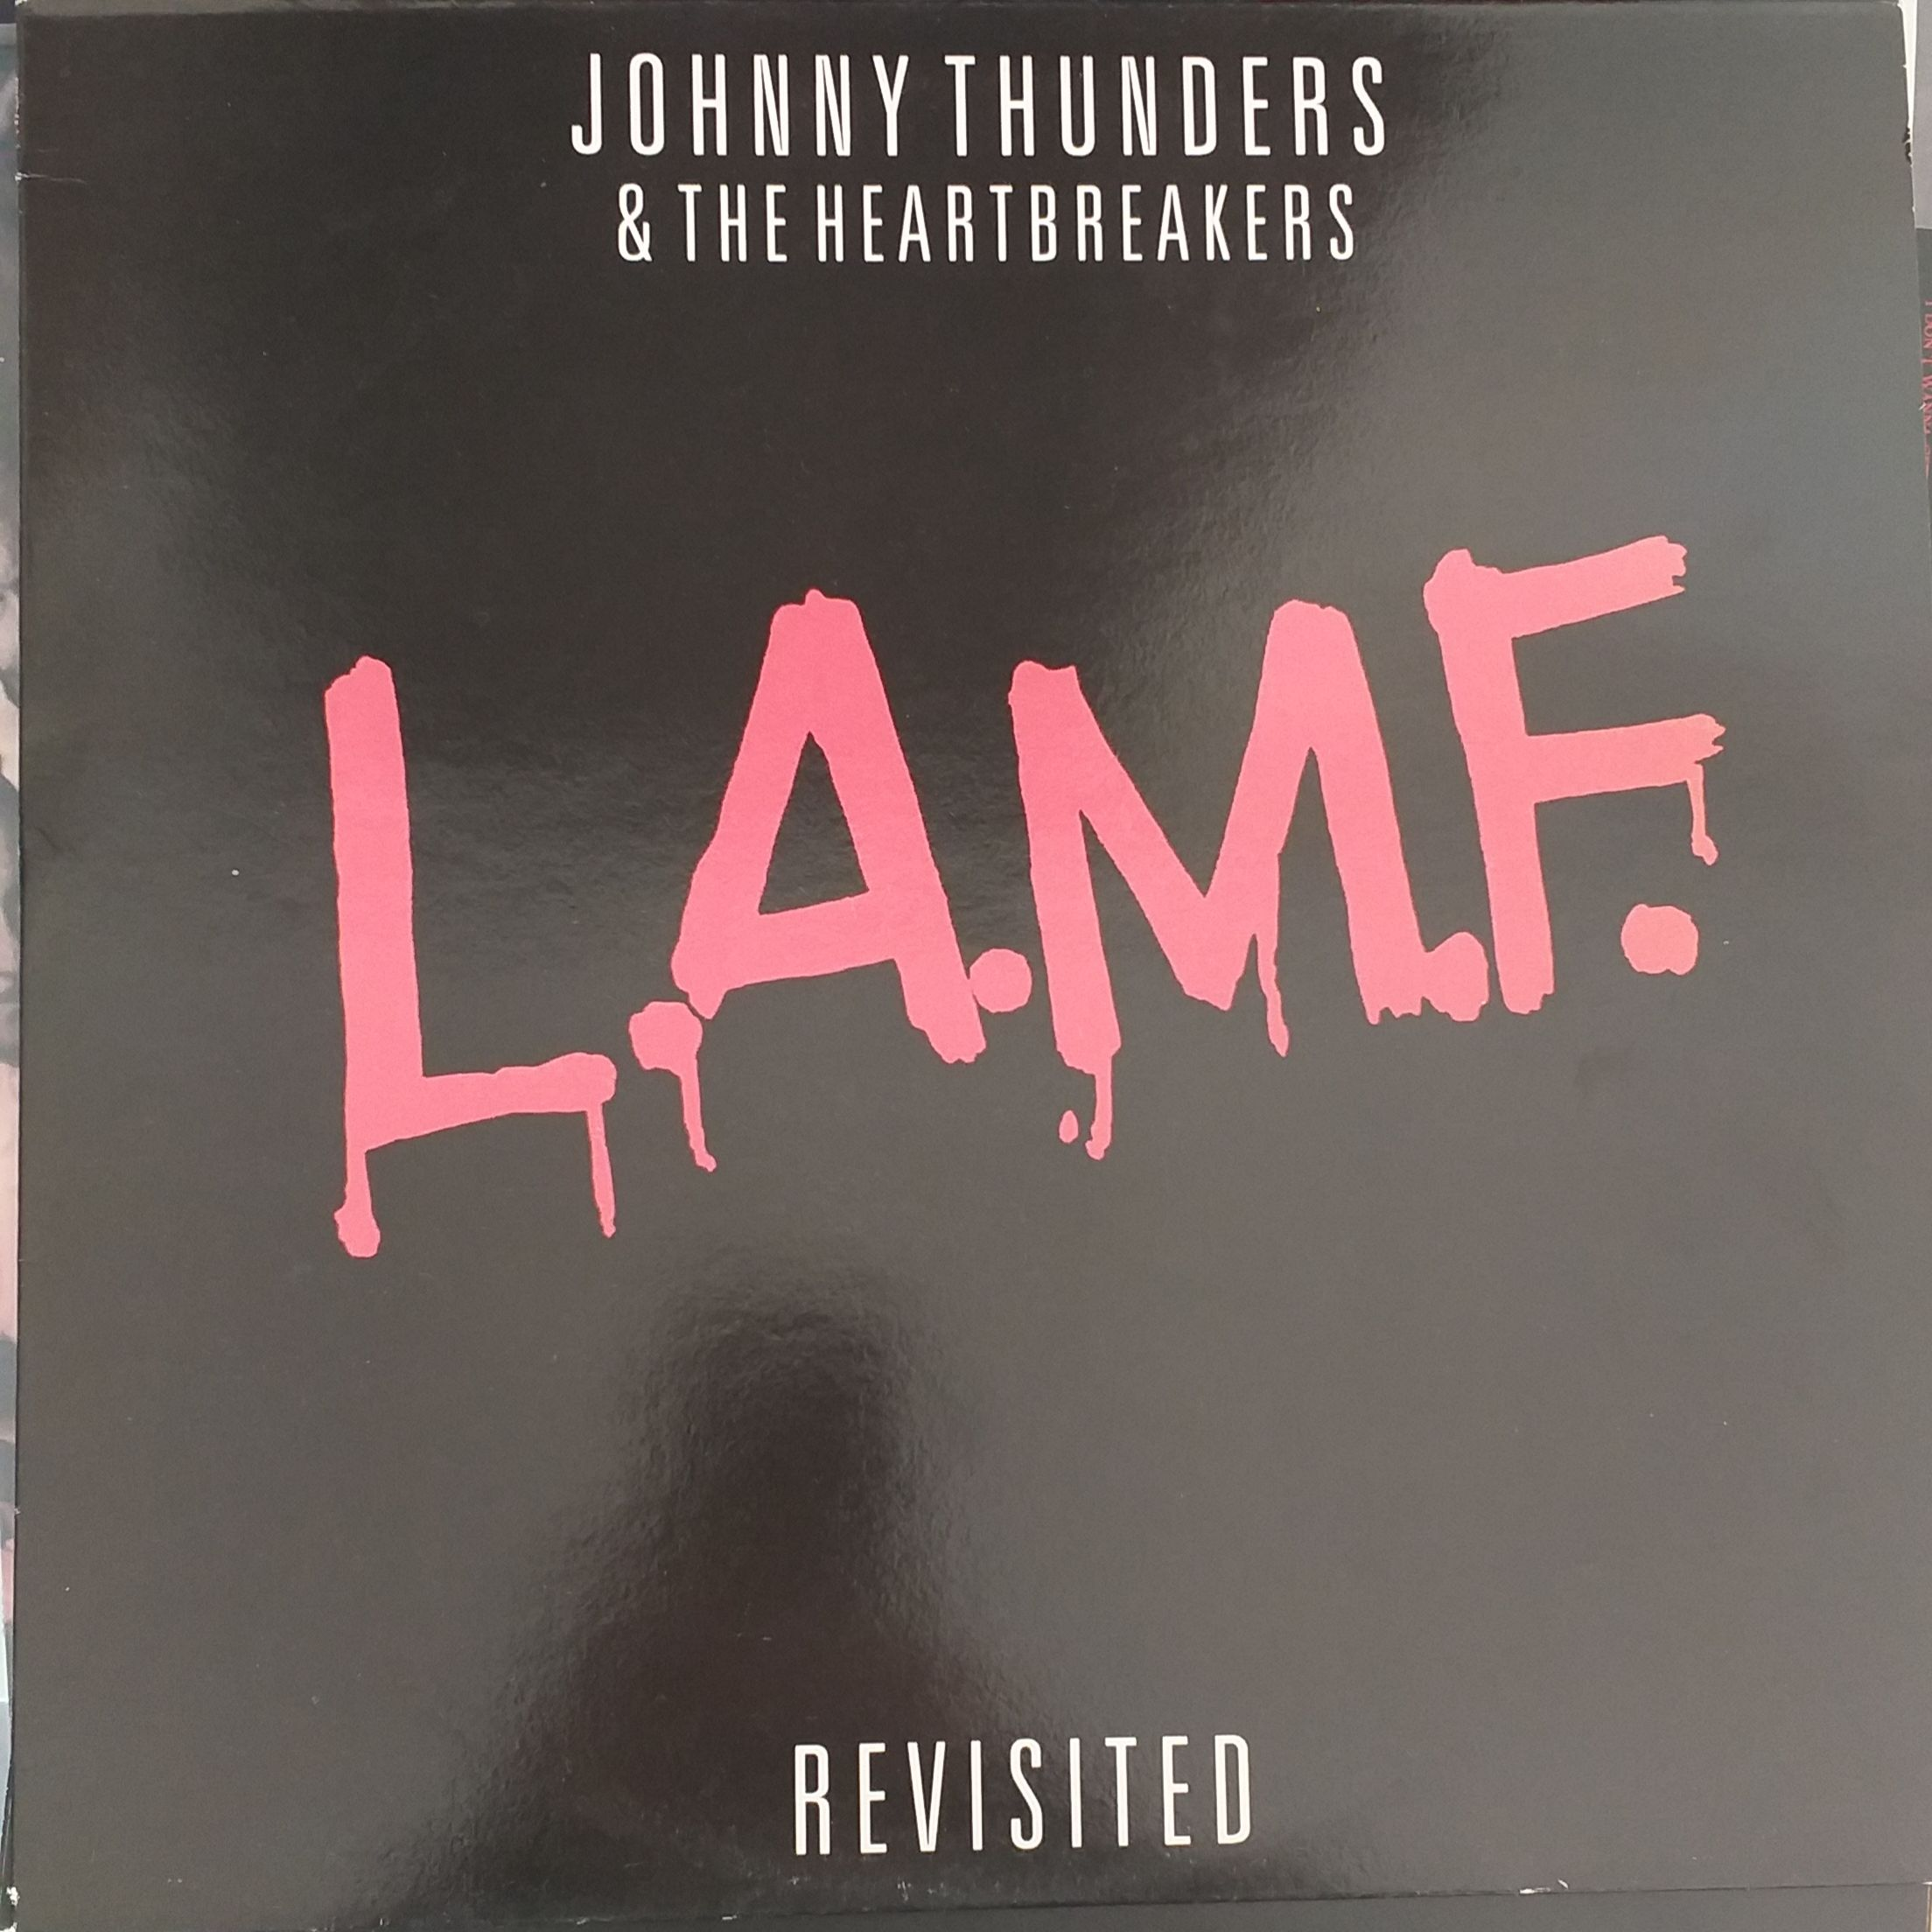 Johnny Thunders & the heartbreakers L.a.m.f. revisited LP undefined